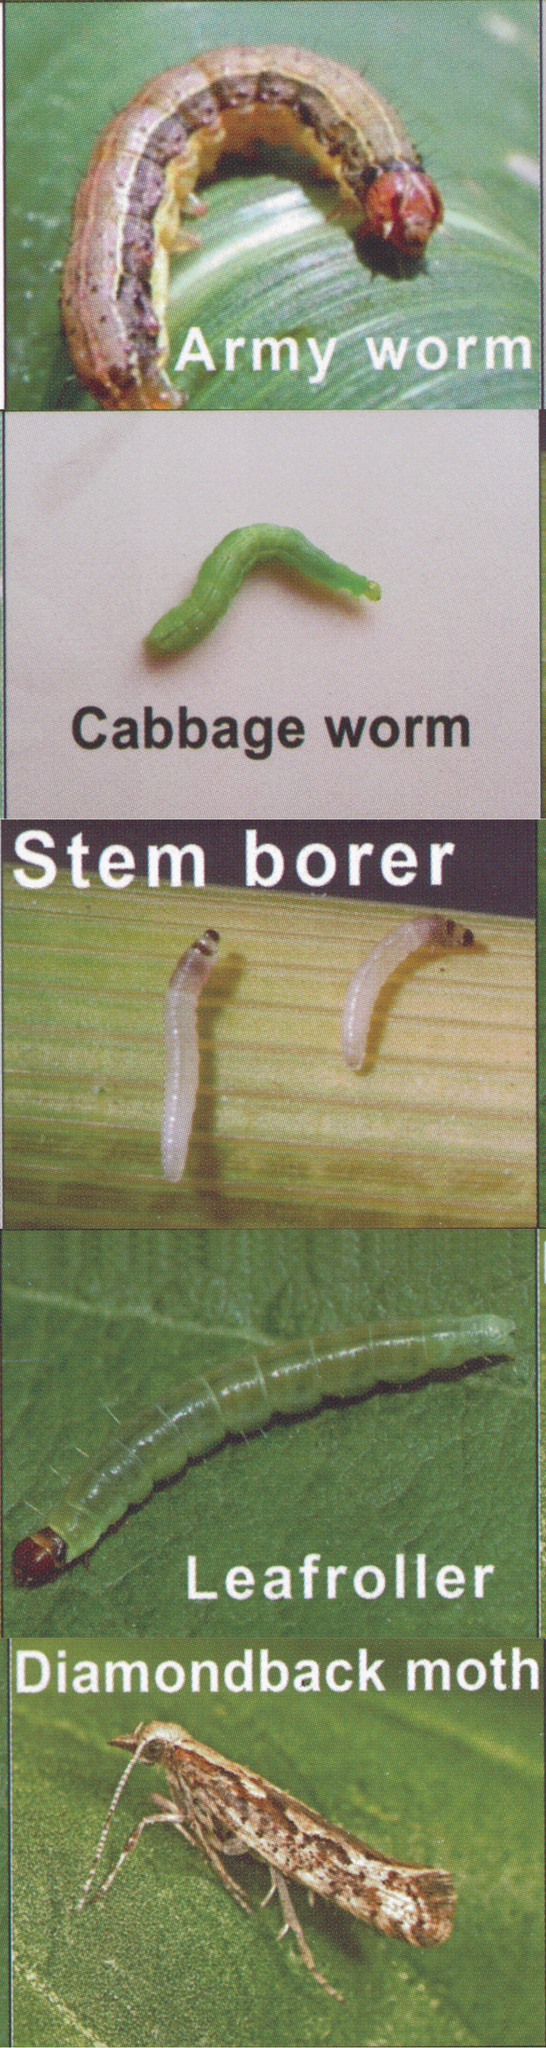 Effective against Cabbage worm, armyworm, diamondback moth, mites, leaf roller worm, fruit borer